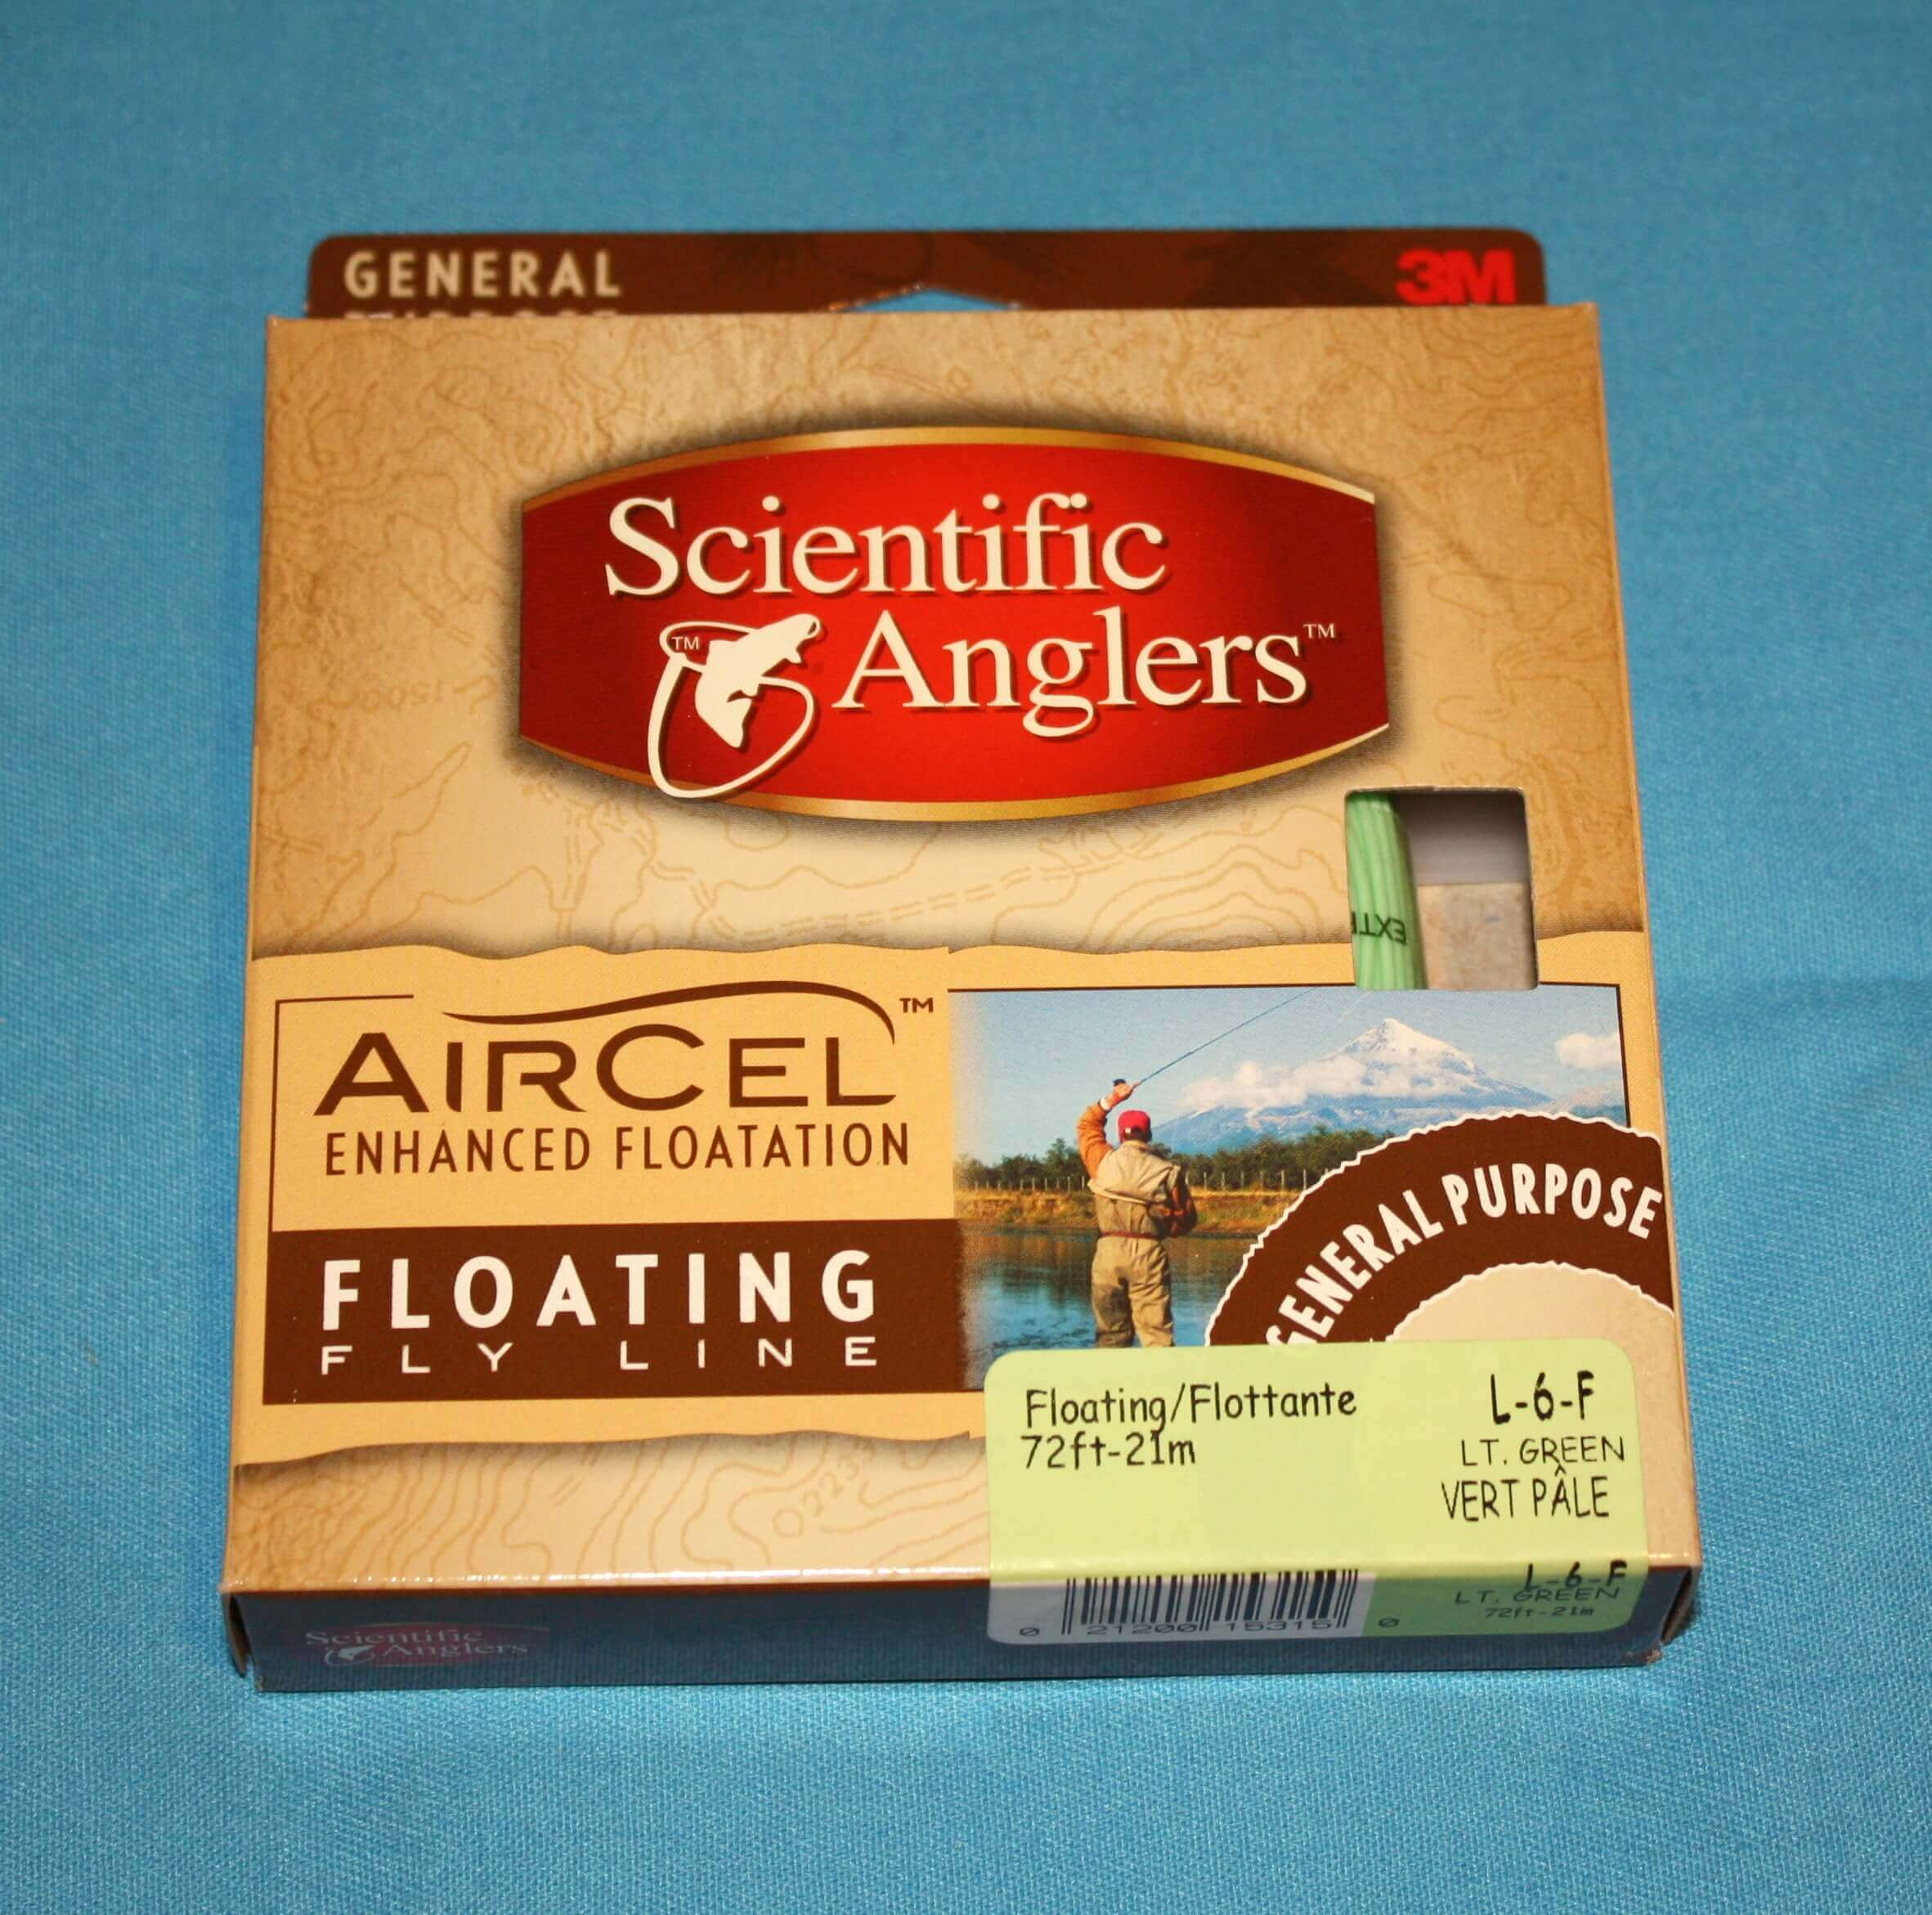 Scientific Angler Line L-6-F